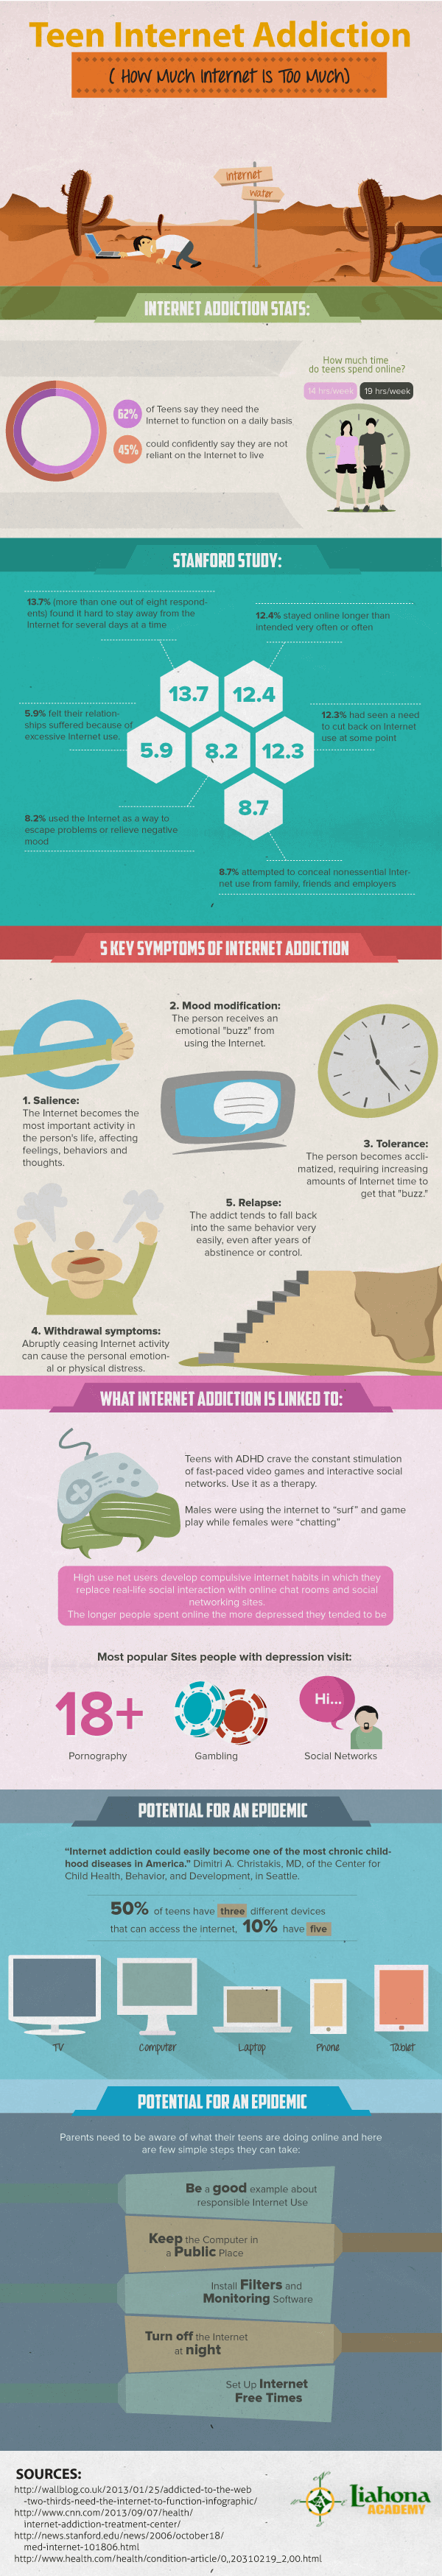 Teen-Internet-Addiction-Infographic-plaza